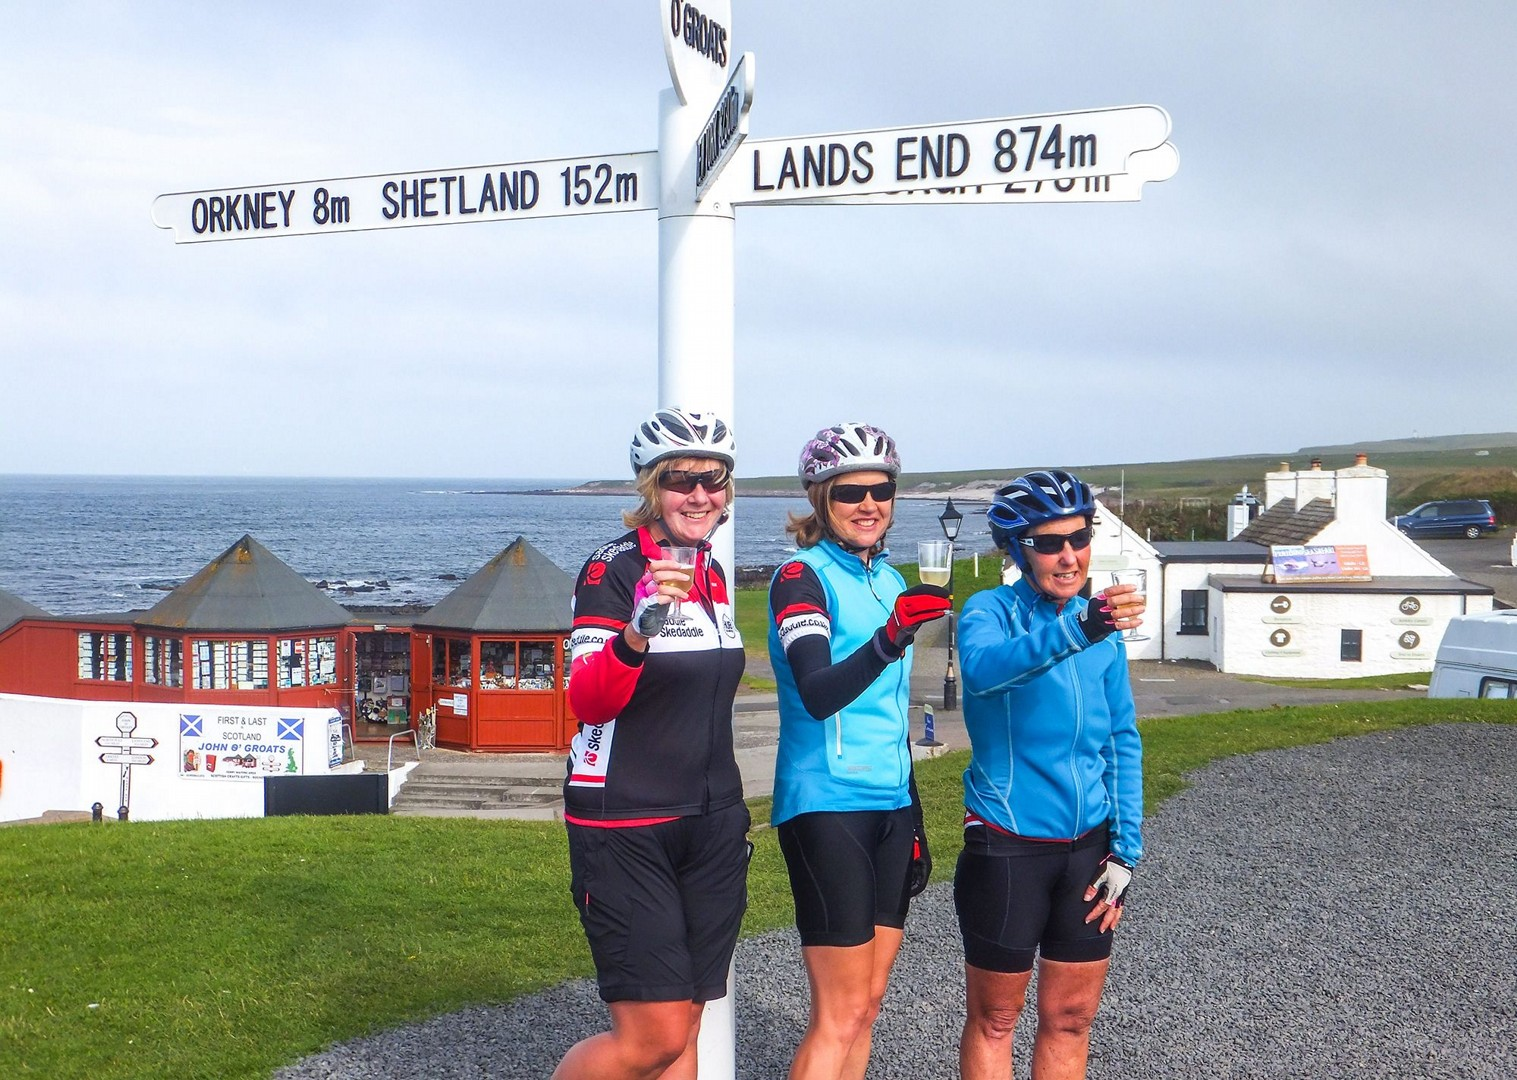 guided-road-cycling-holiday-celebrations-in-the-uk-ride-length-of-britain-lejog.jpg - UK - Land's End to John O'Groats Classic (16 days) - Guided Road Cycling Holiday - Road Cycling